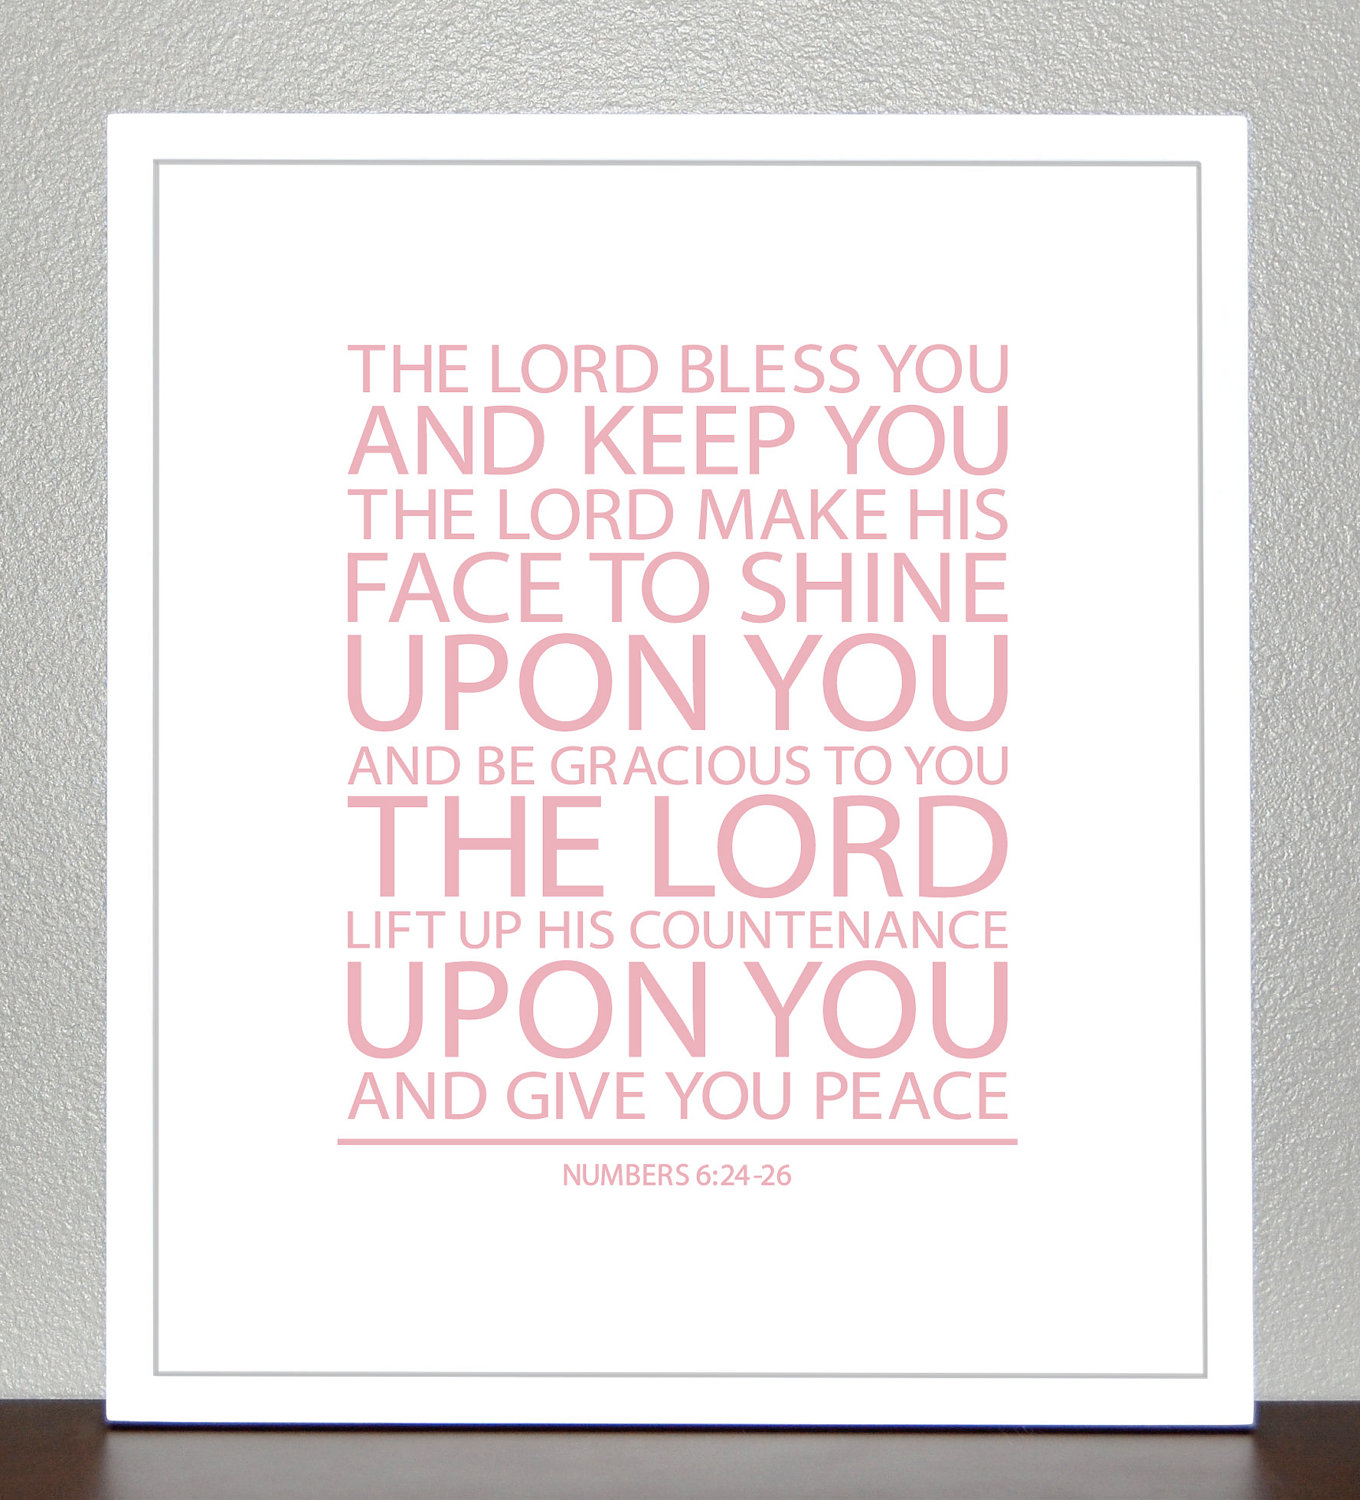 Catholic Confirmation Quotes From The Bible: Catholic Baptism Bible Quotes. QuotesGram